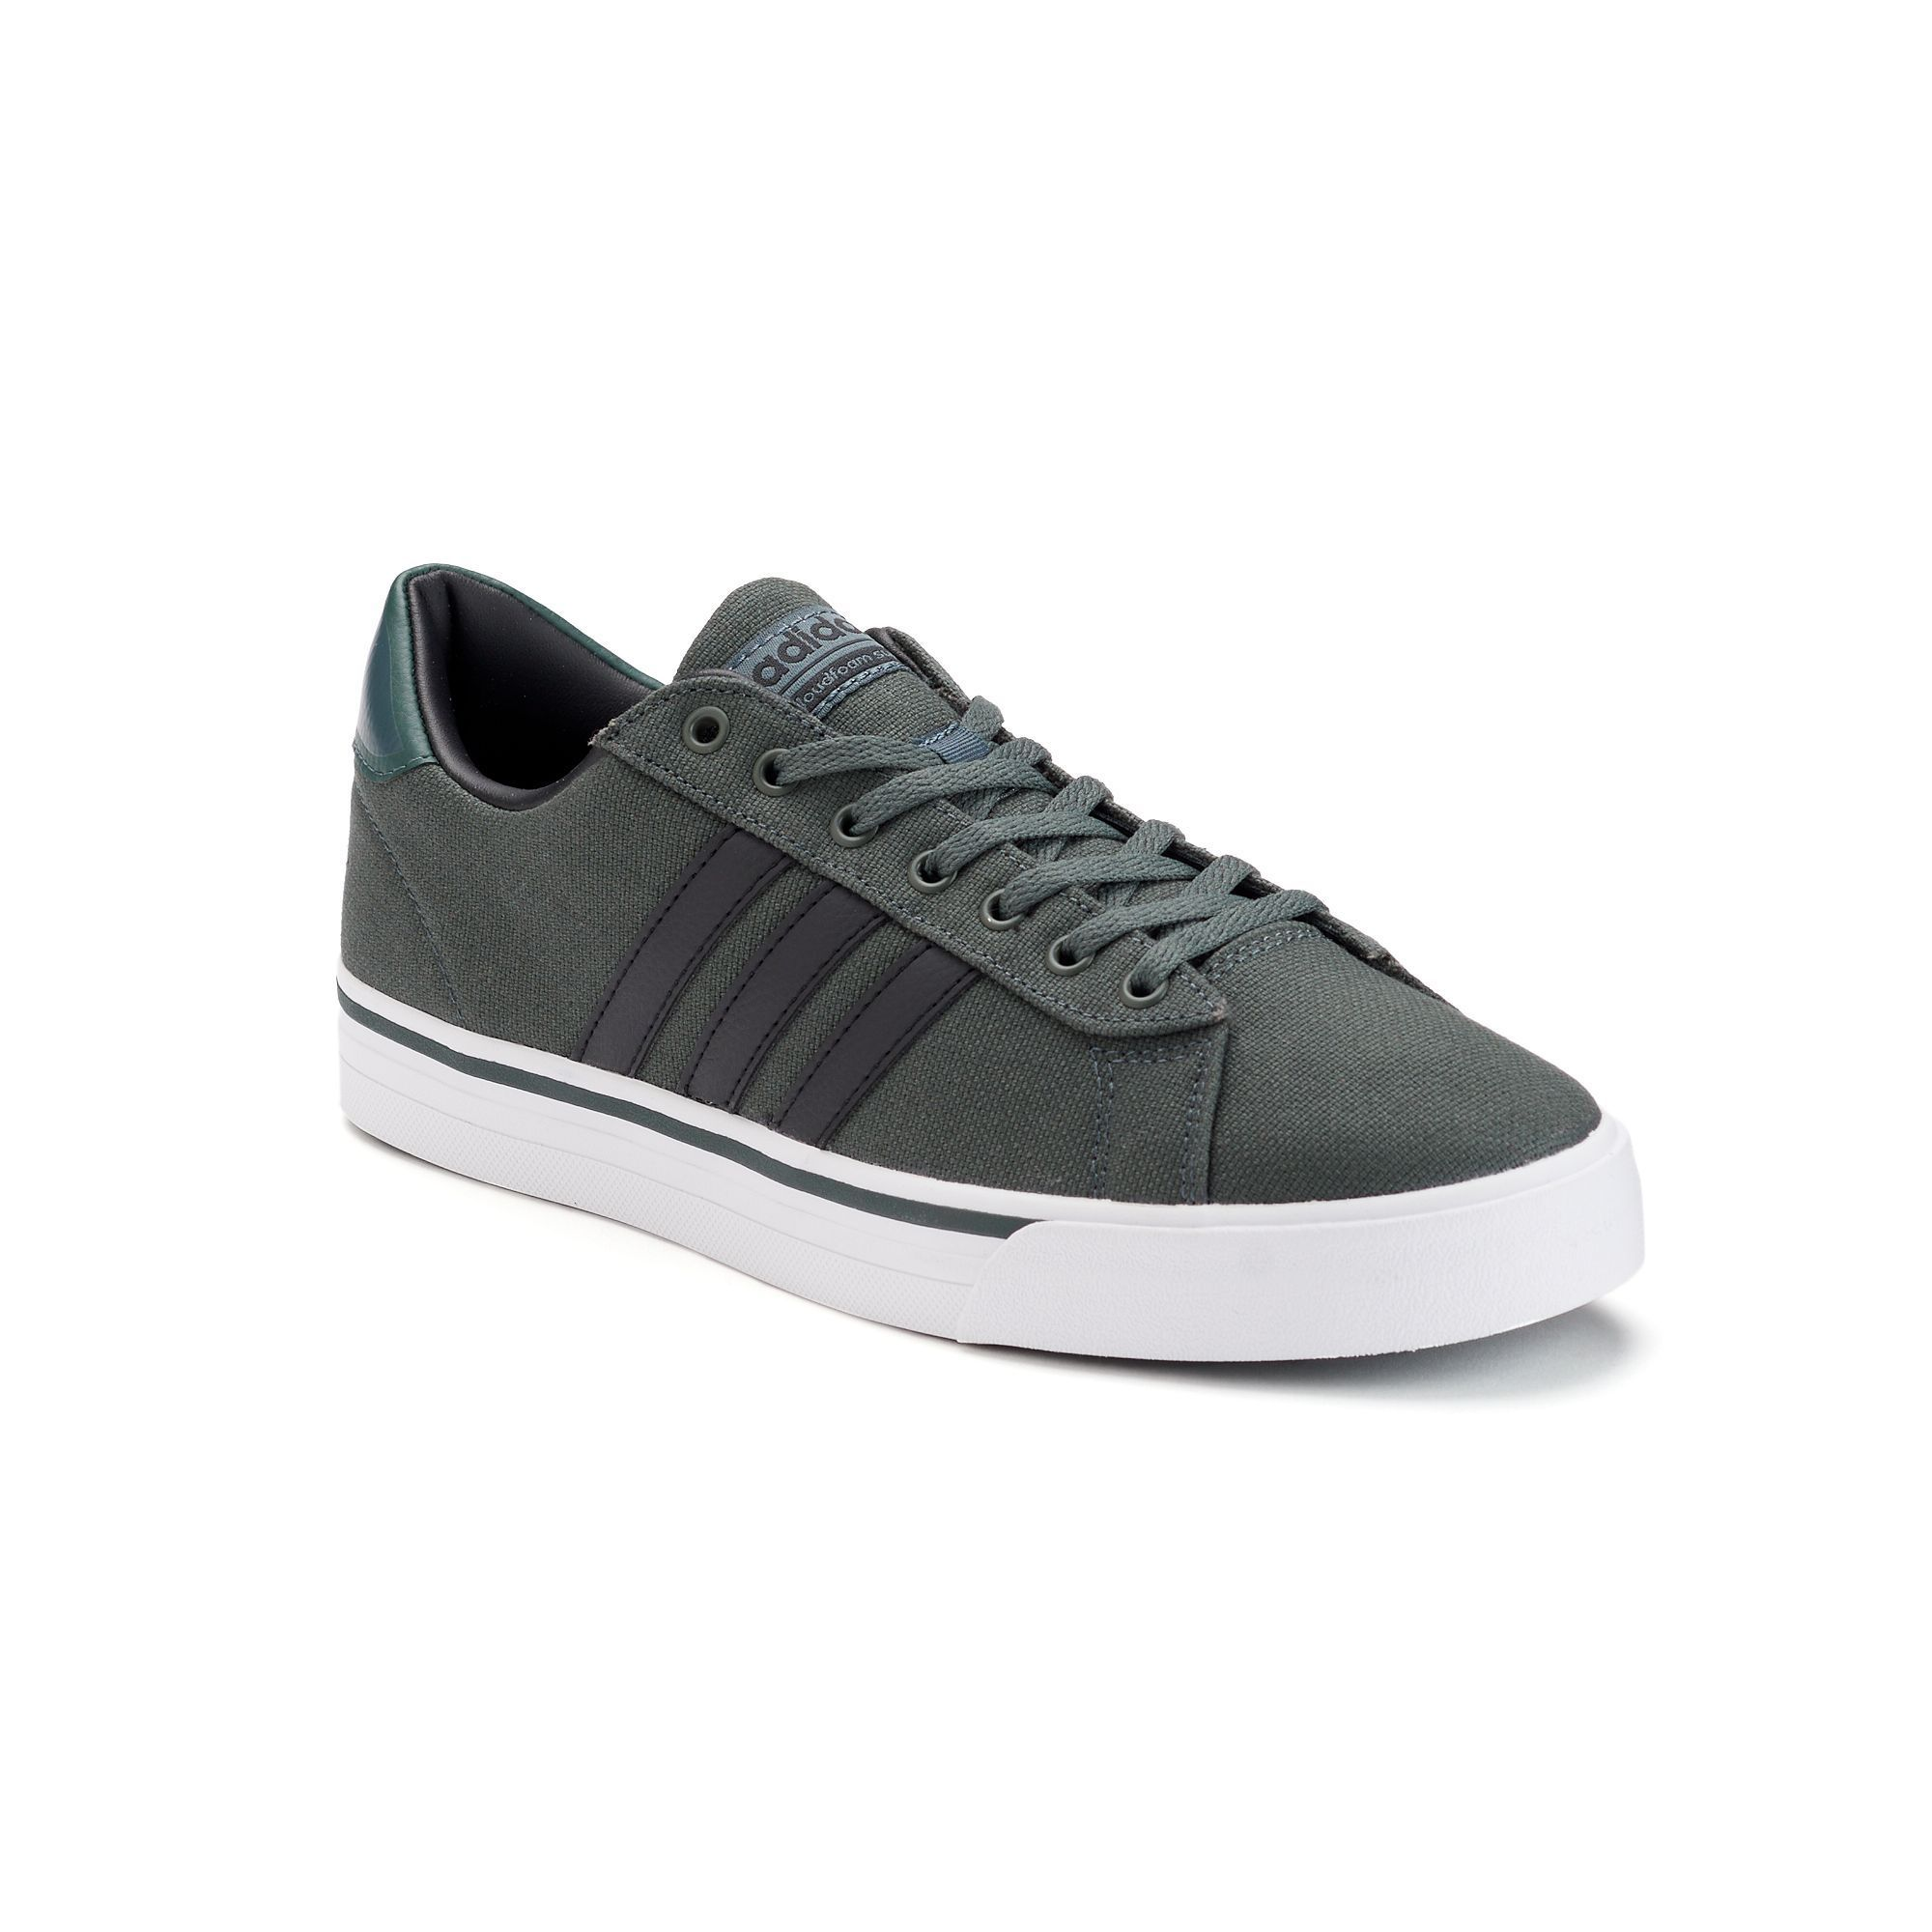 67900f79 adidas NEO Cloudfoam Super Daily Men's Shoes | Products | Adidas neo ...